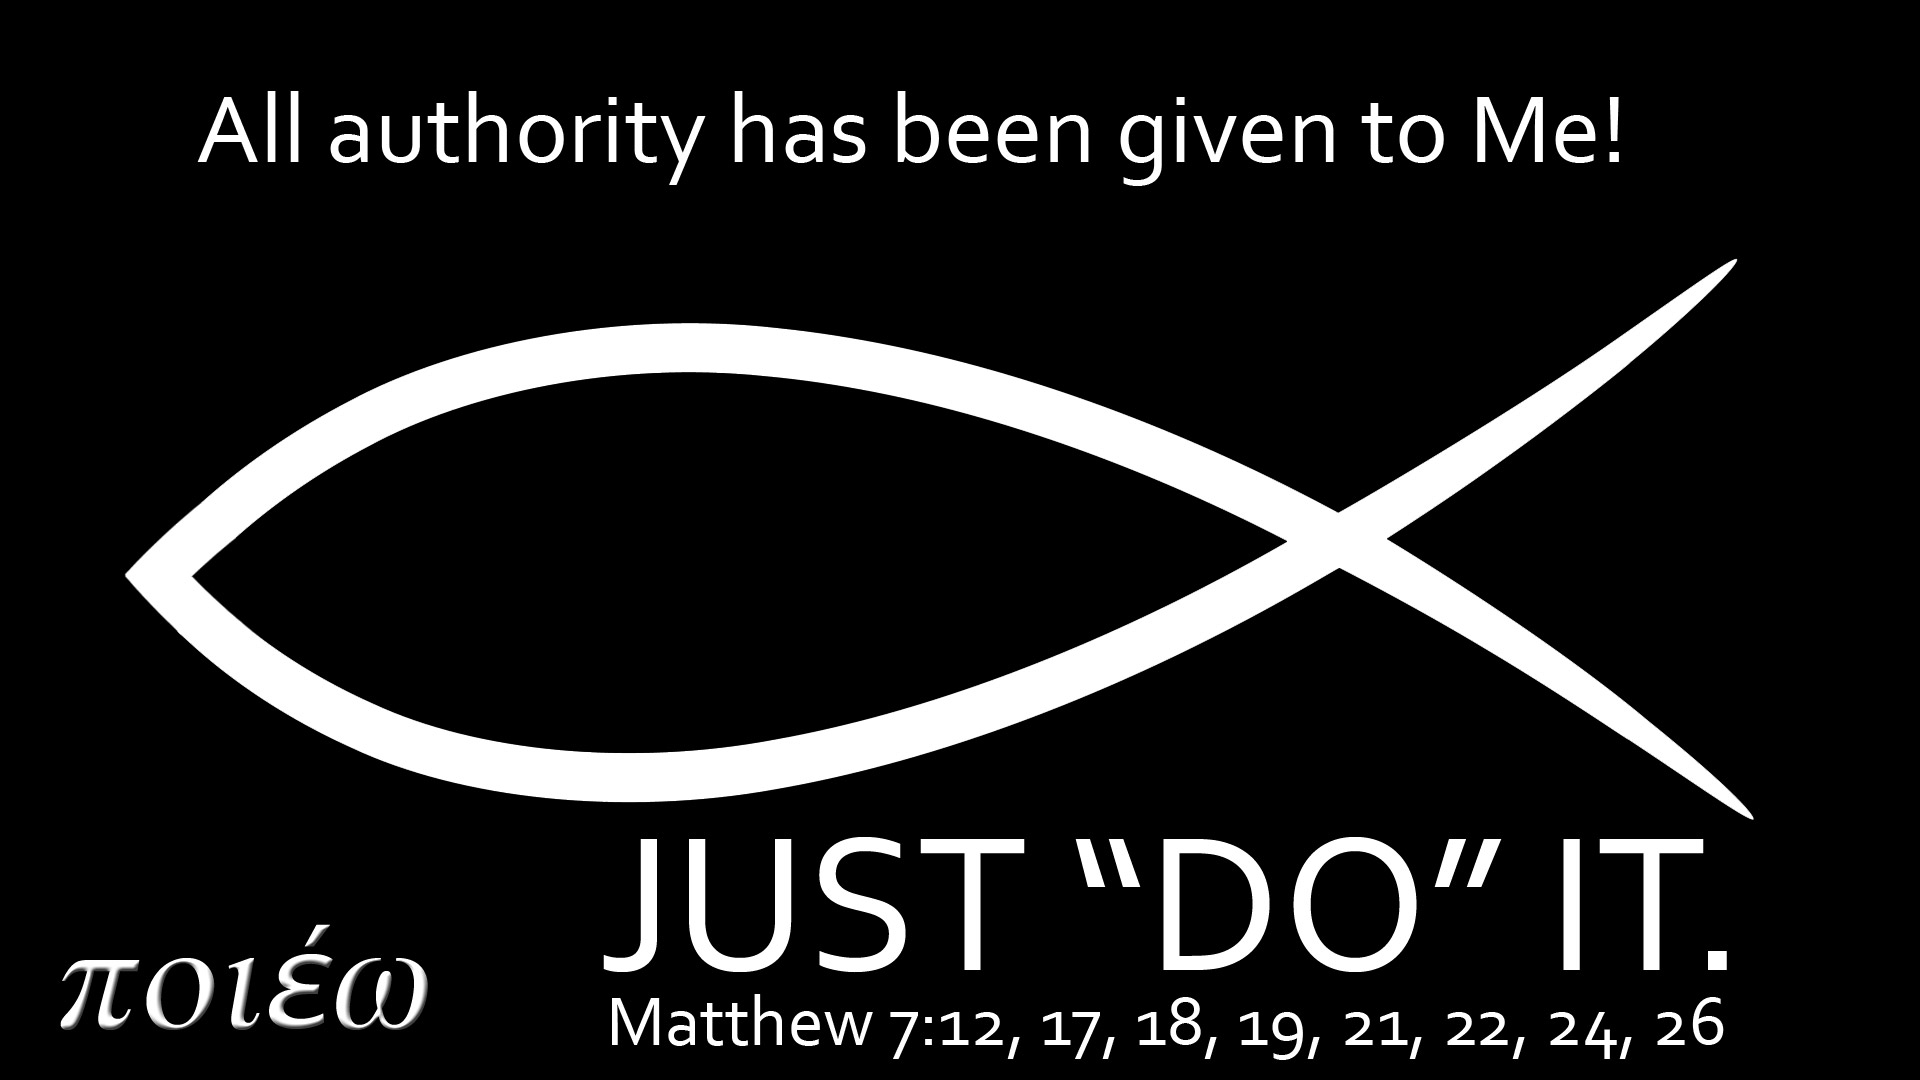 PowerPoint Background using Matthew 7:12, 17, 18, 19, 21, 22, 24, 26